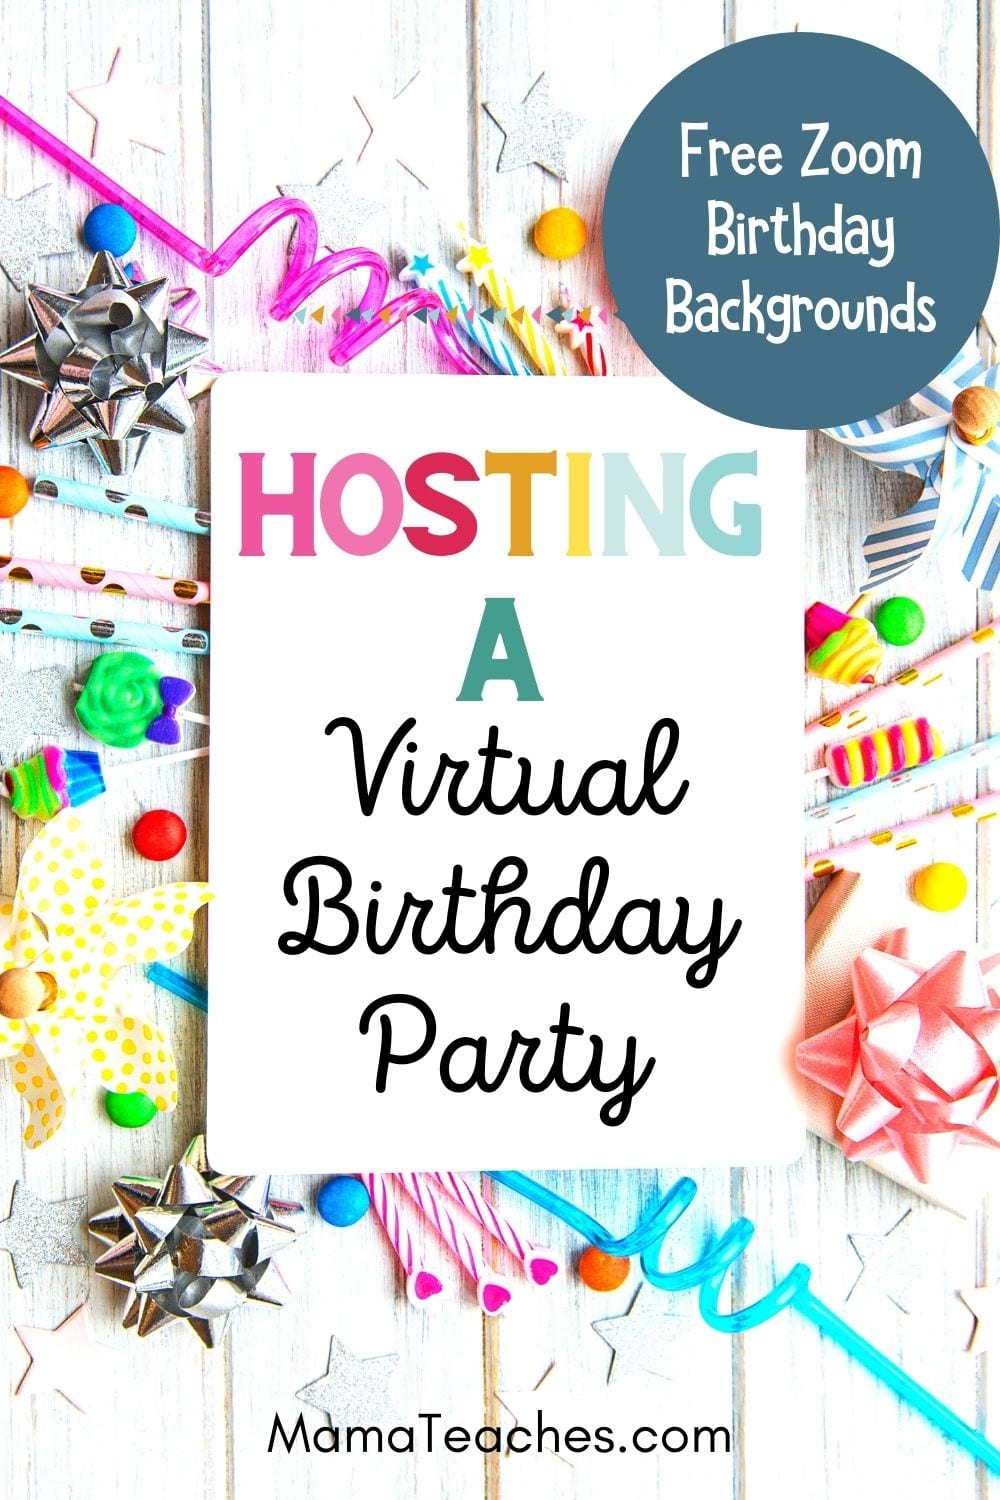 Hosting a Virtual Birthday Party for Kids